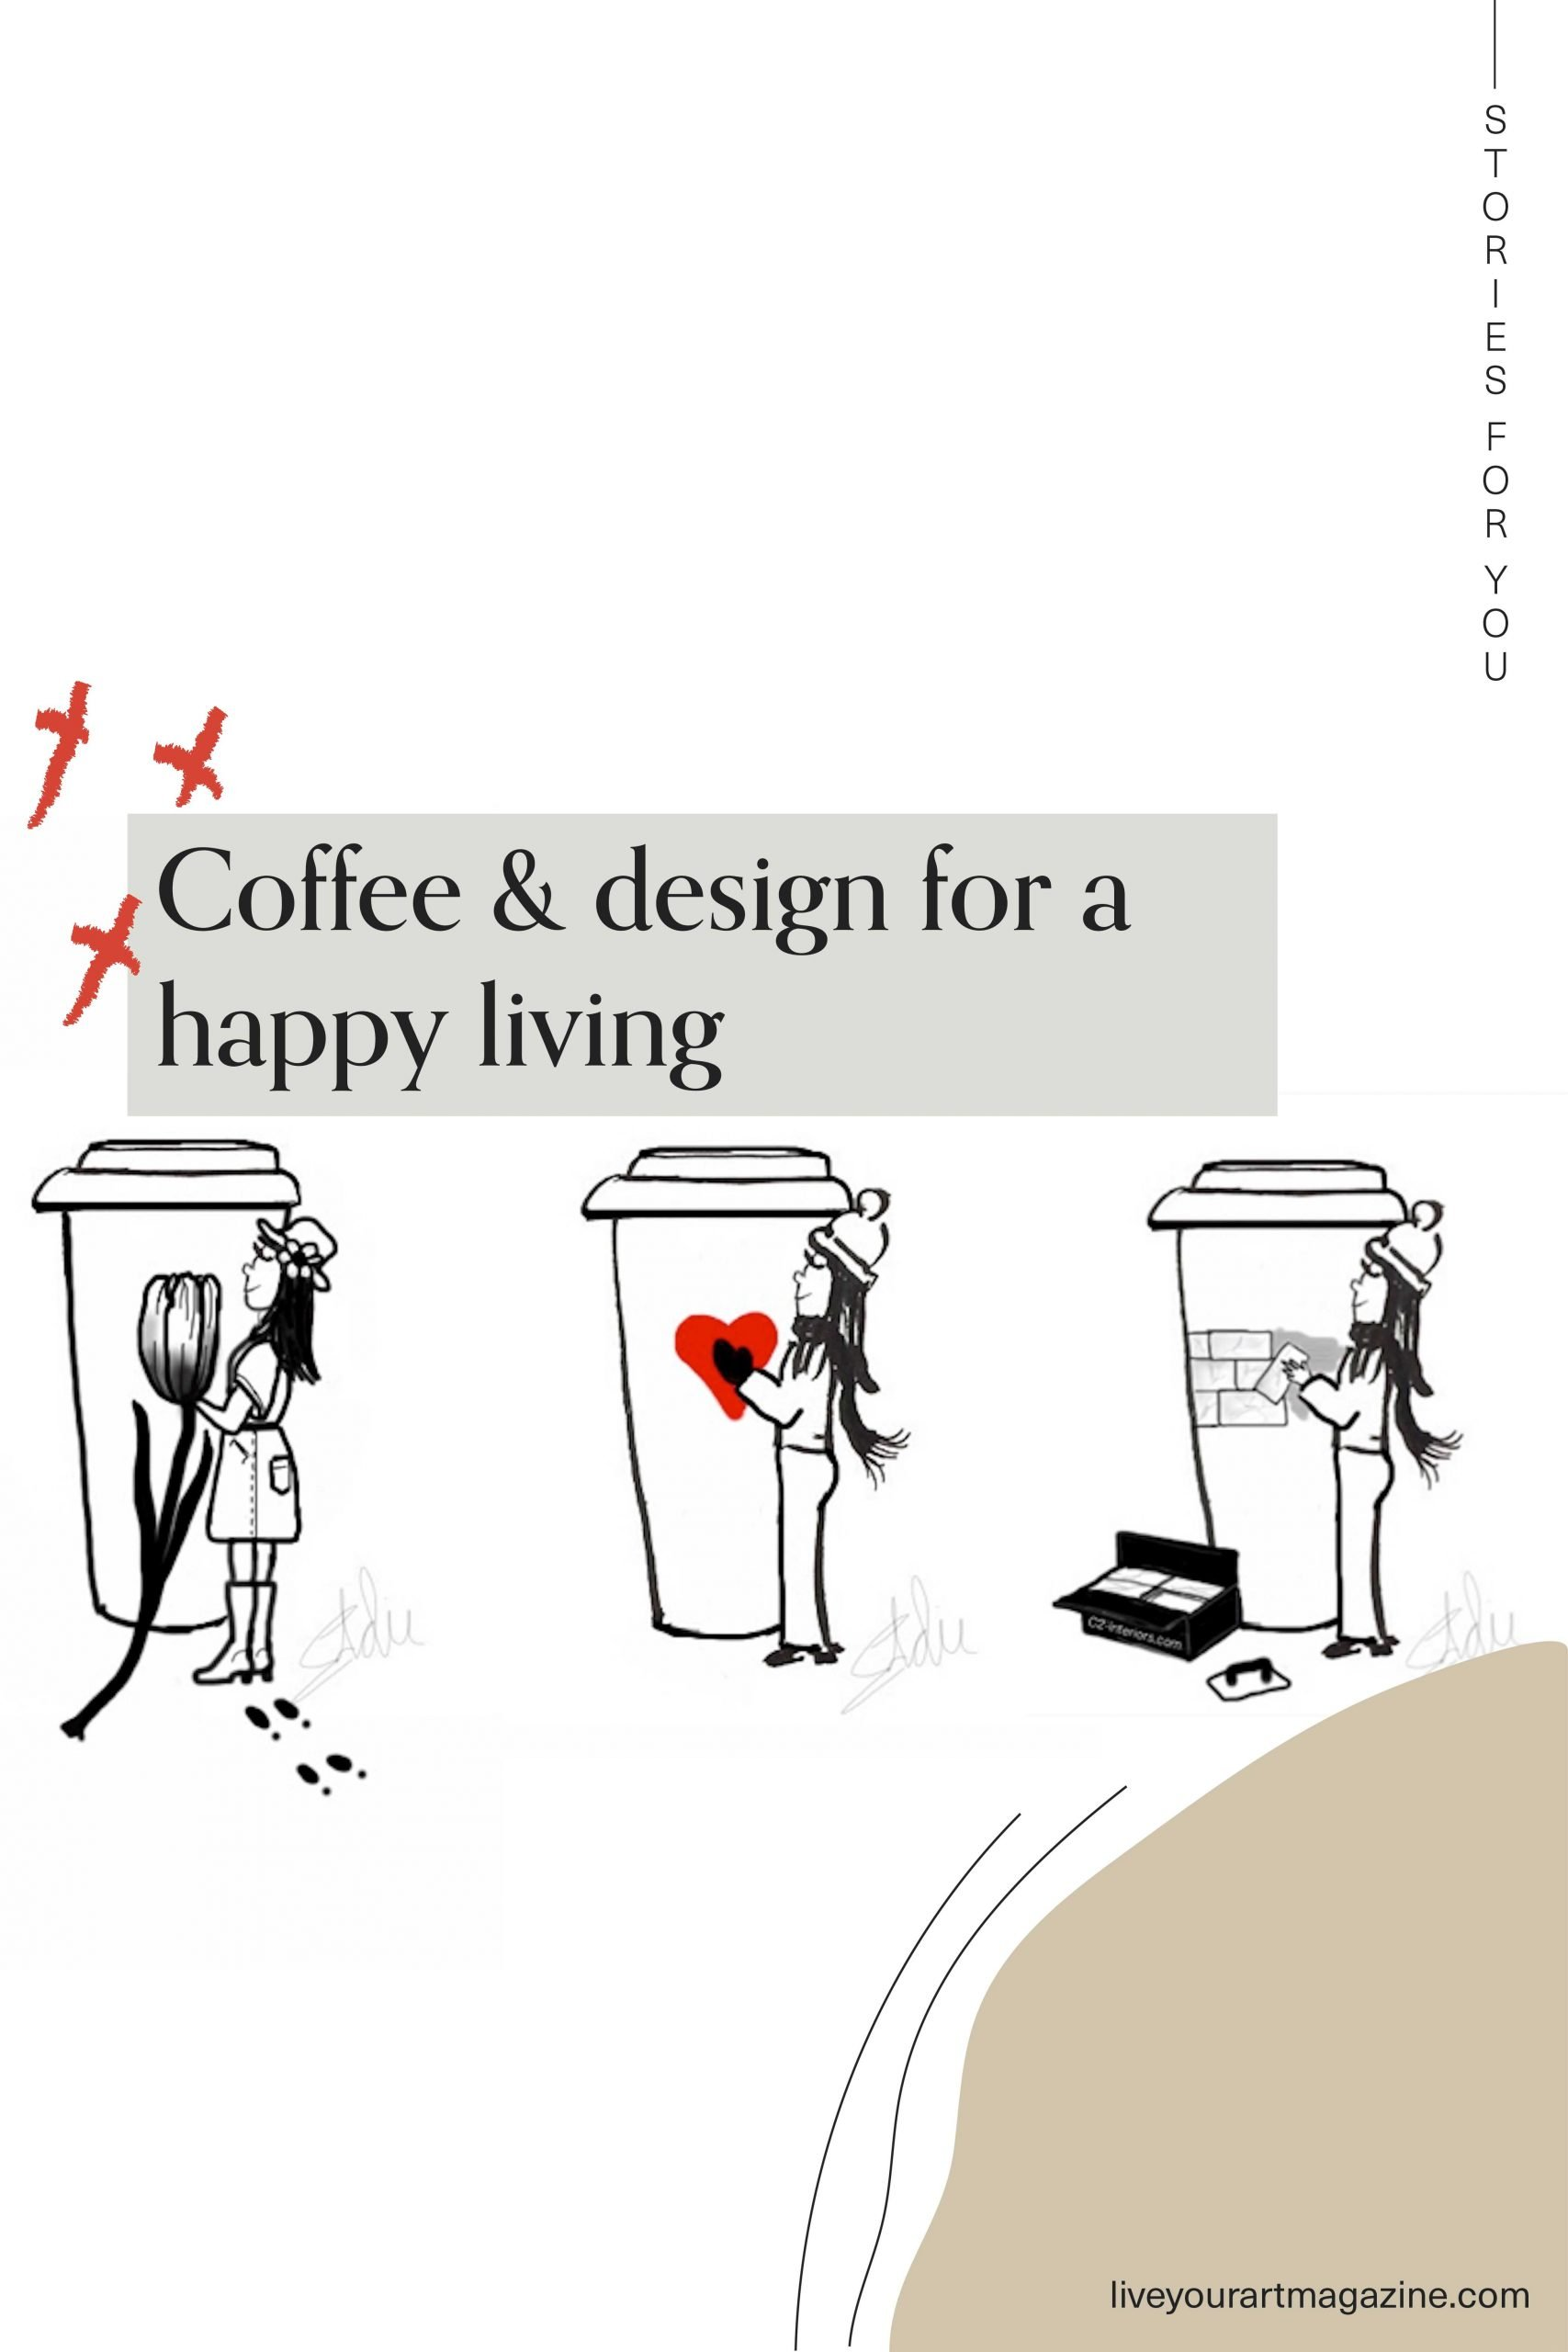 Coffee & Design for a happy living